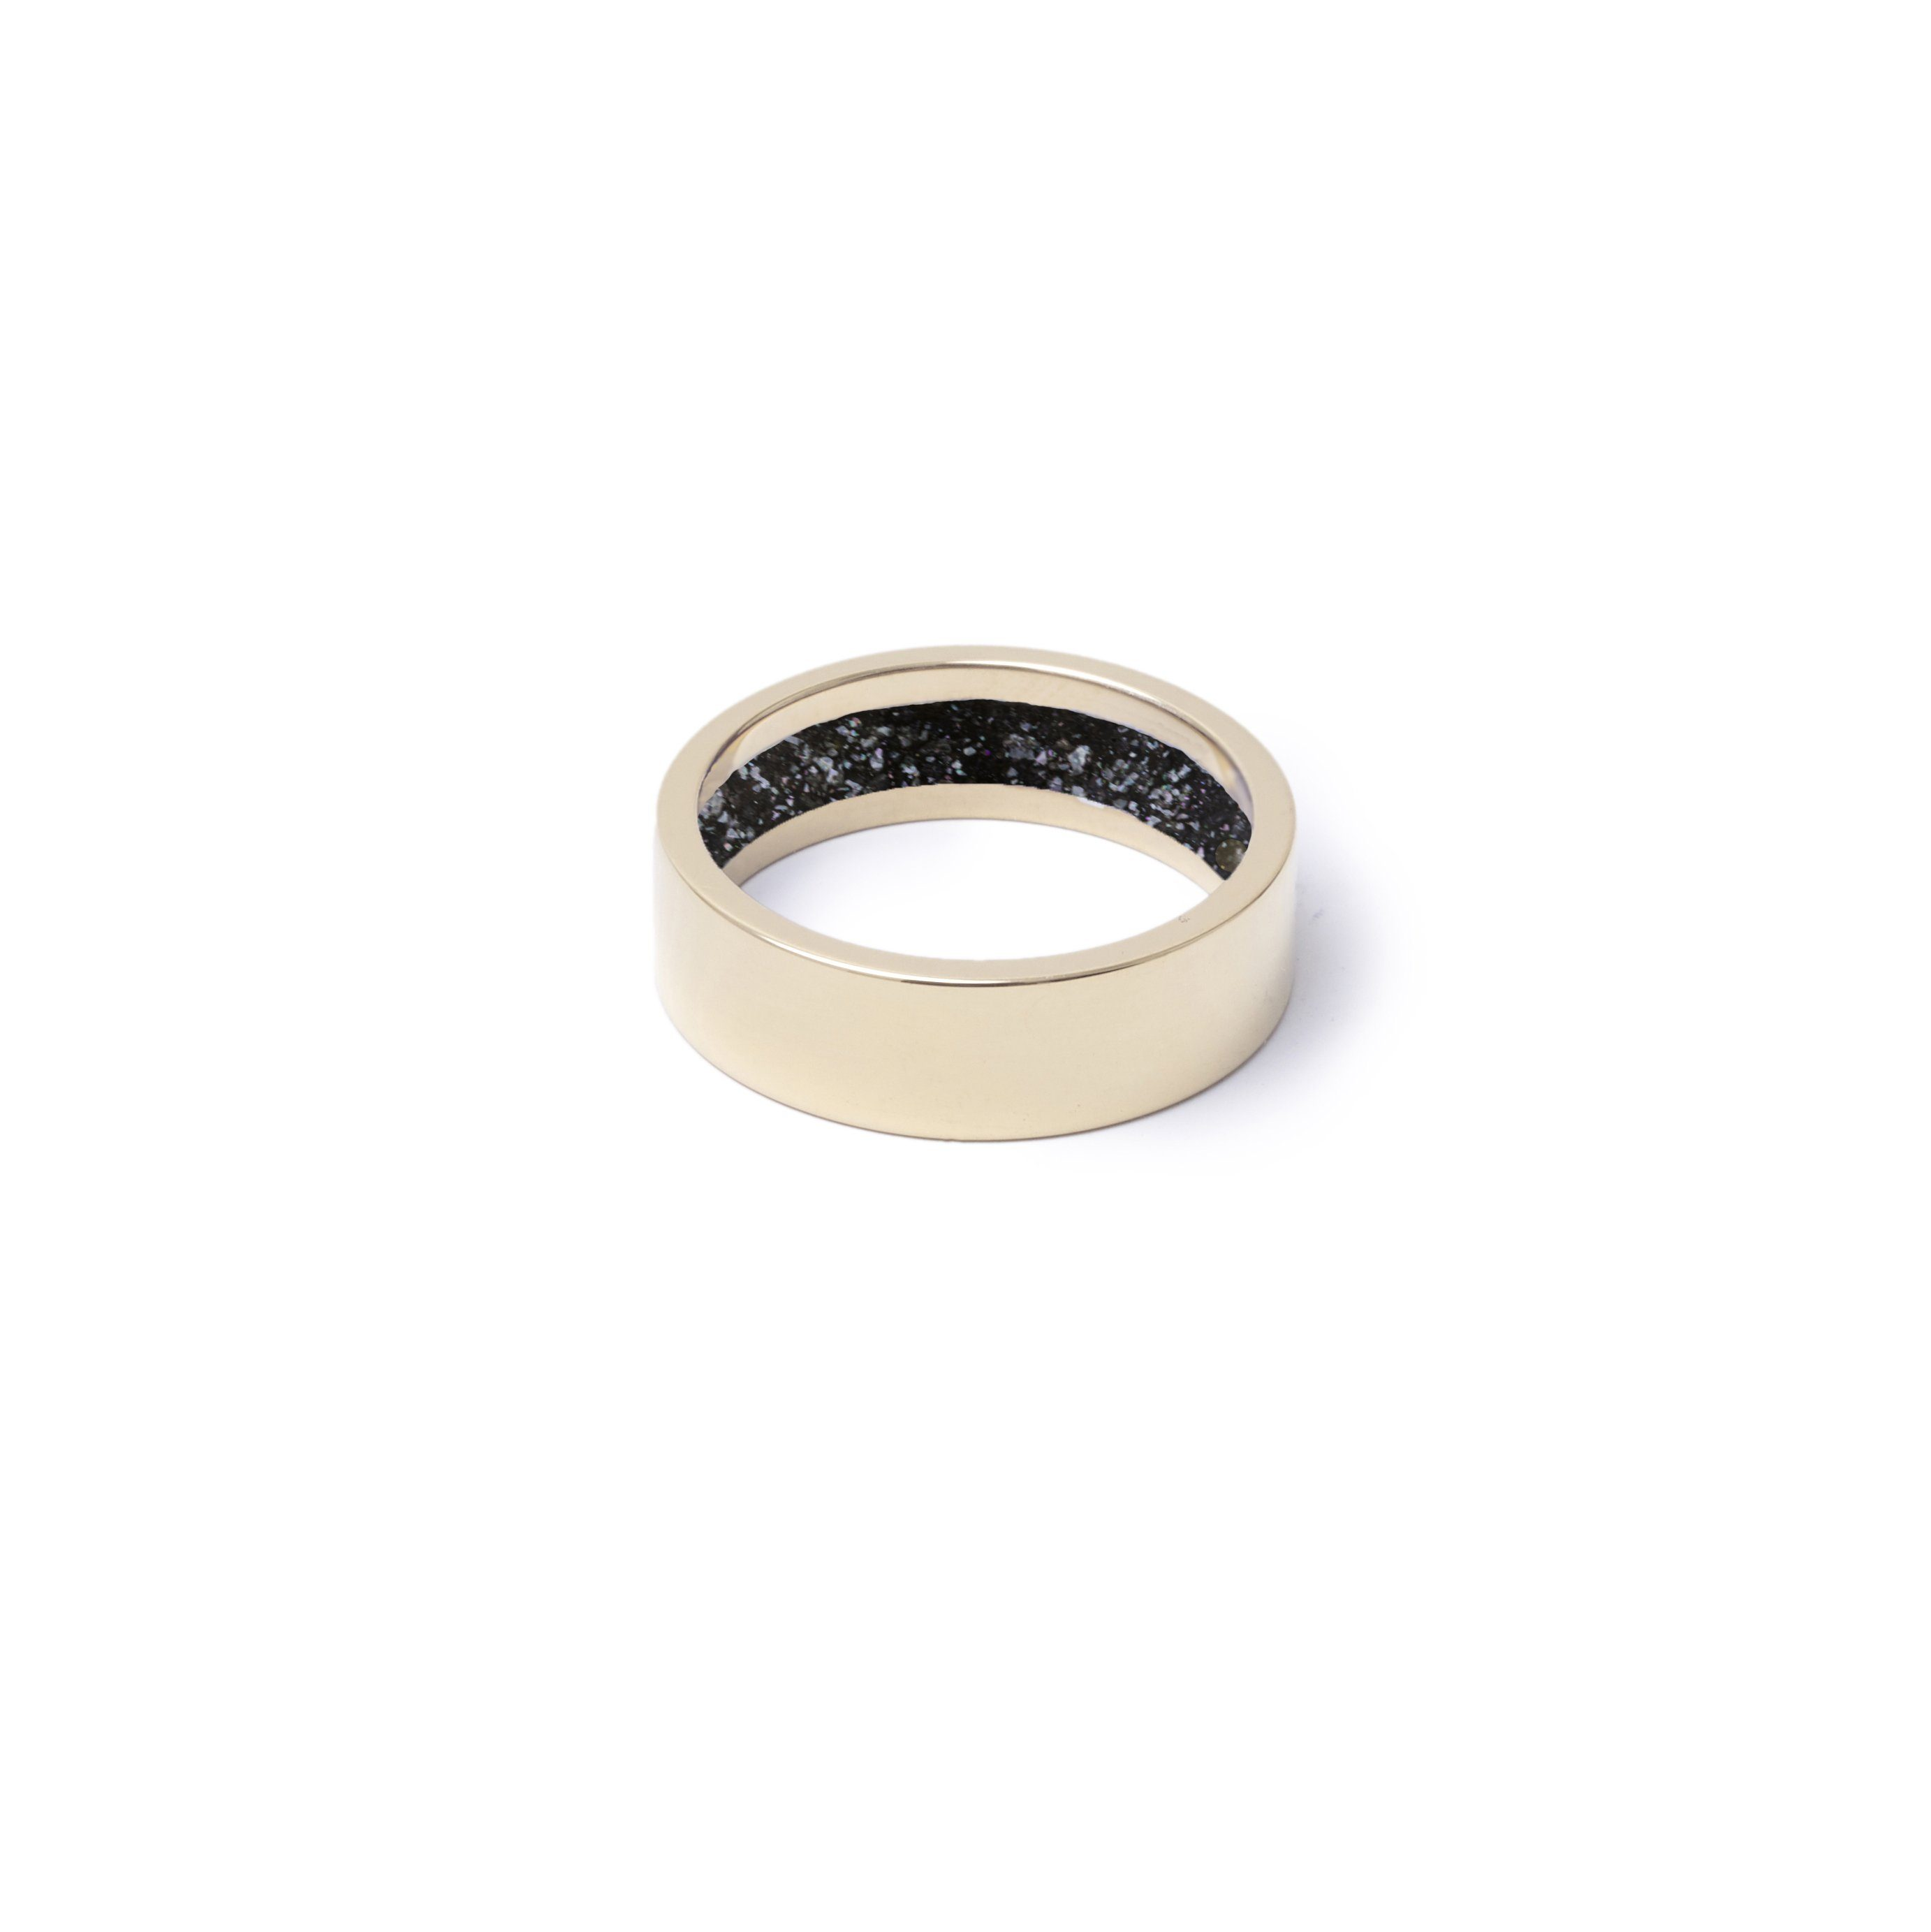 Everence Ring, 10k Yellow Gold everence.life 6mm Charcoal